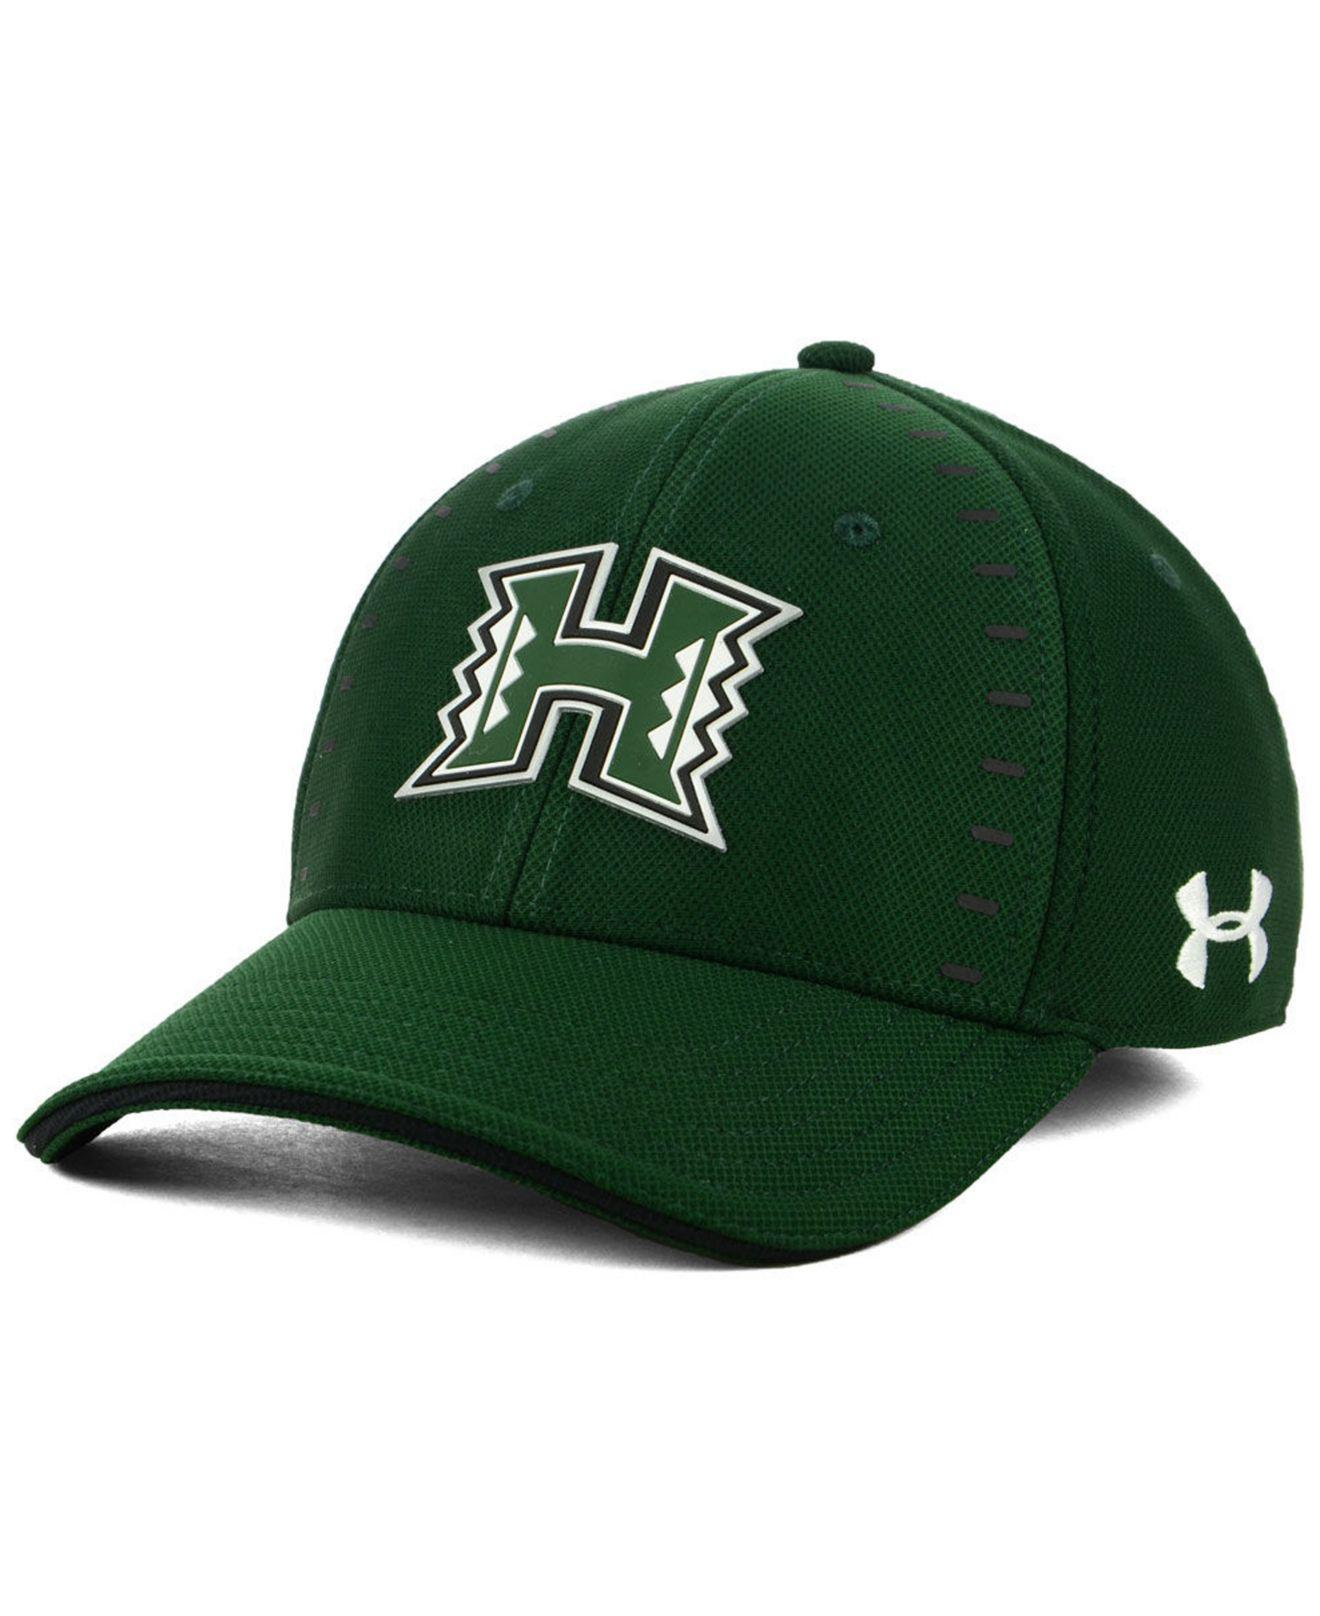 Under Armour. Men s Green Hawaii Warriors Blitzing Flex Stretch Fitted Cap d940eac4fd7